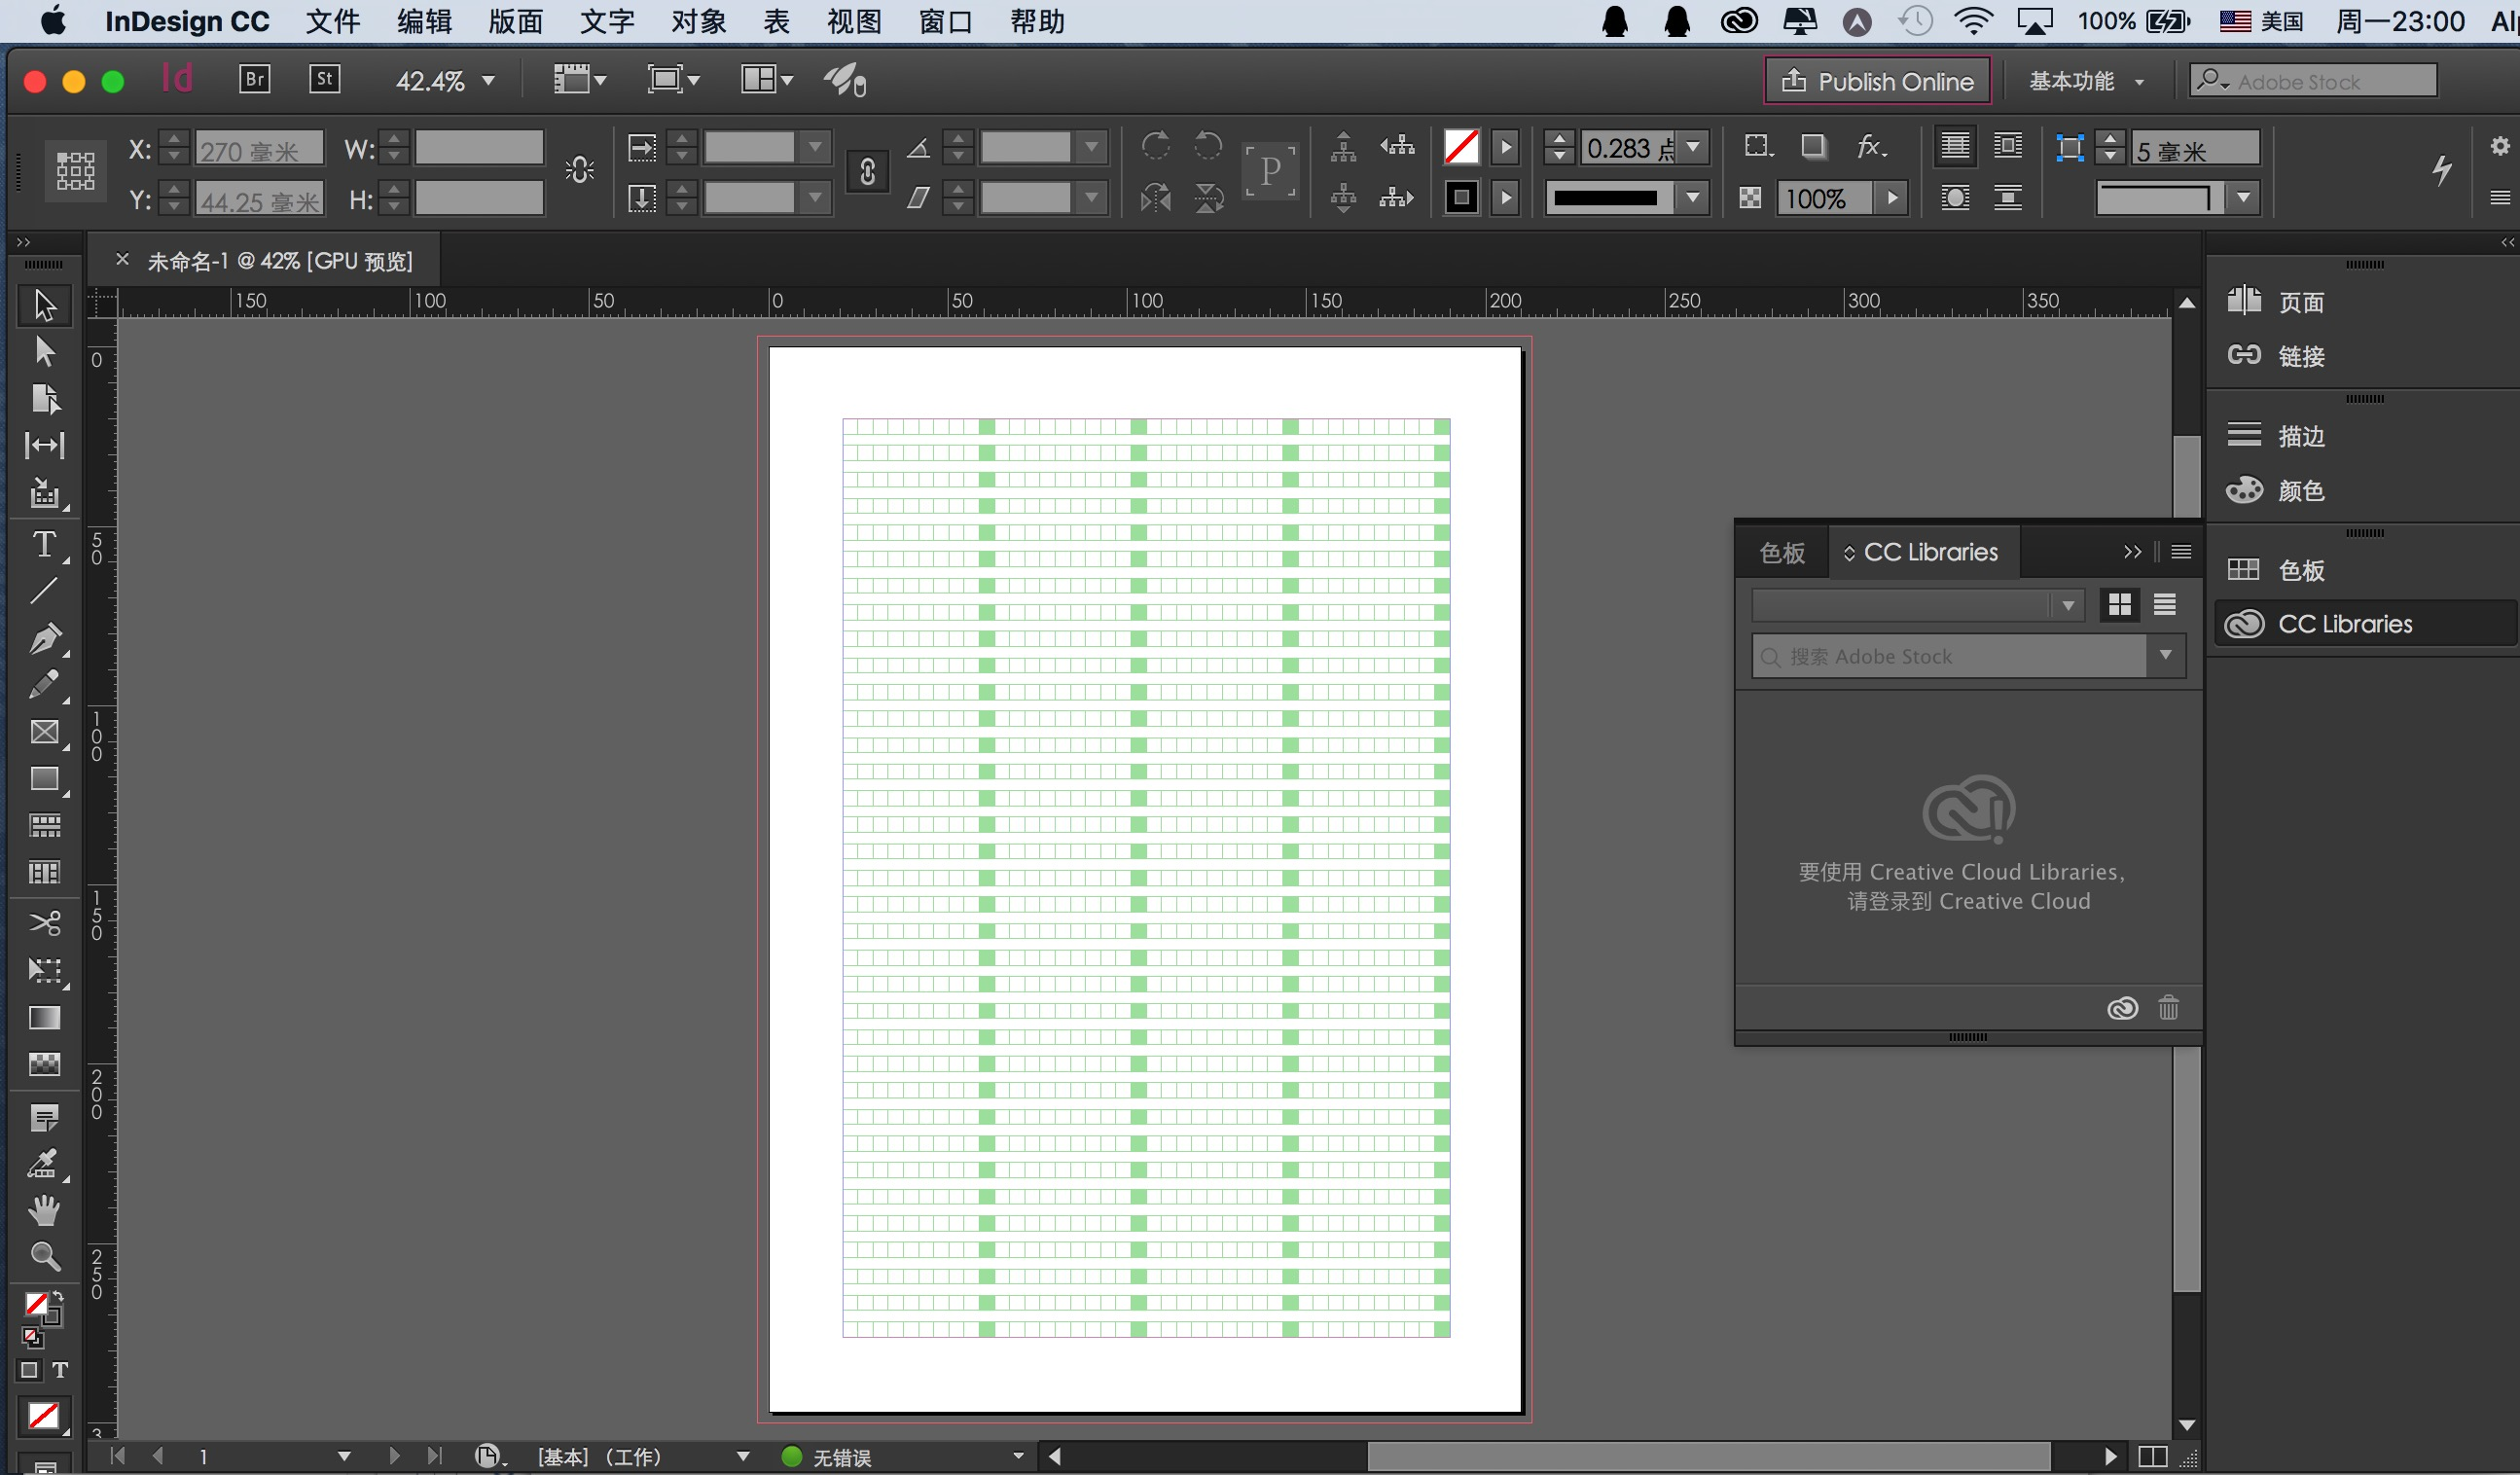 indesign cc 201